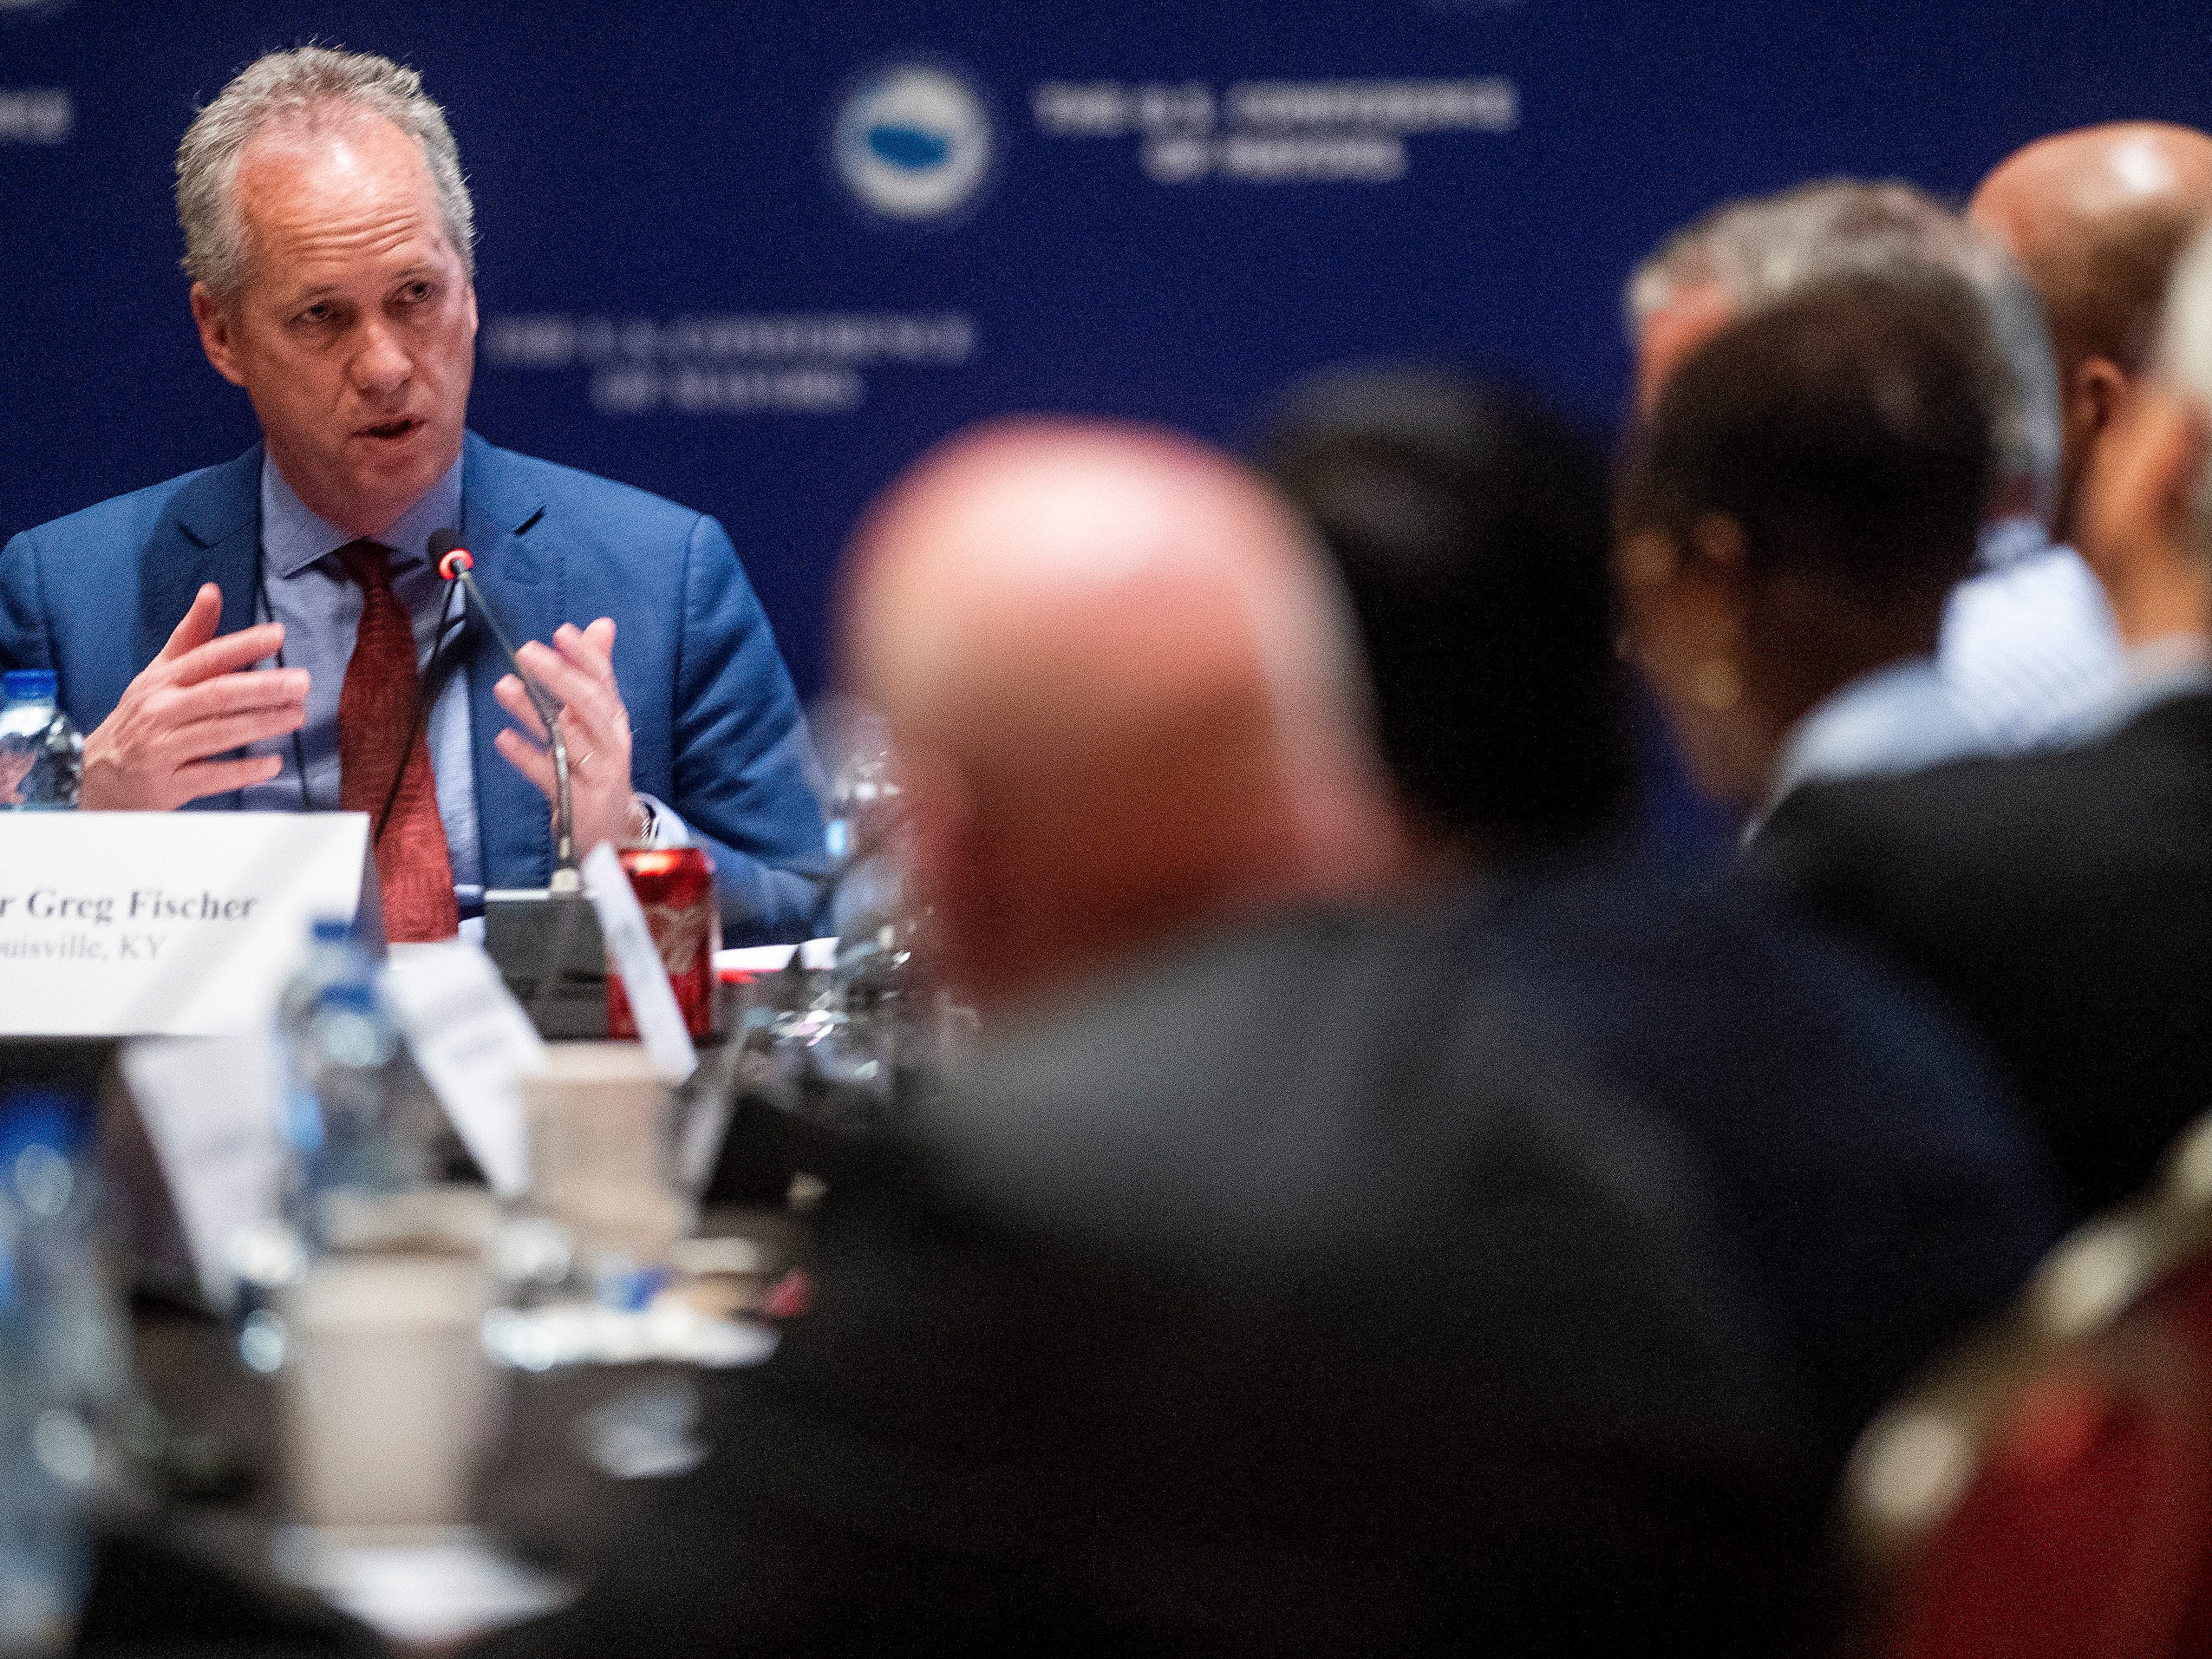 Mayor Greg Fischer, of Louisville, Ky., speaks during a summit of the U.S. Conference of Mayors in Montgomery, Ala., on Wednesday November 14, 2018 to address extremism, bigotry and divisiveness.